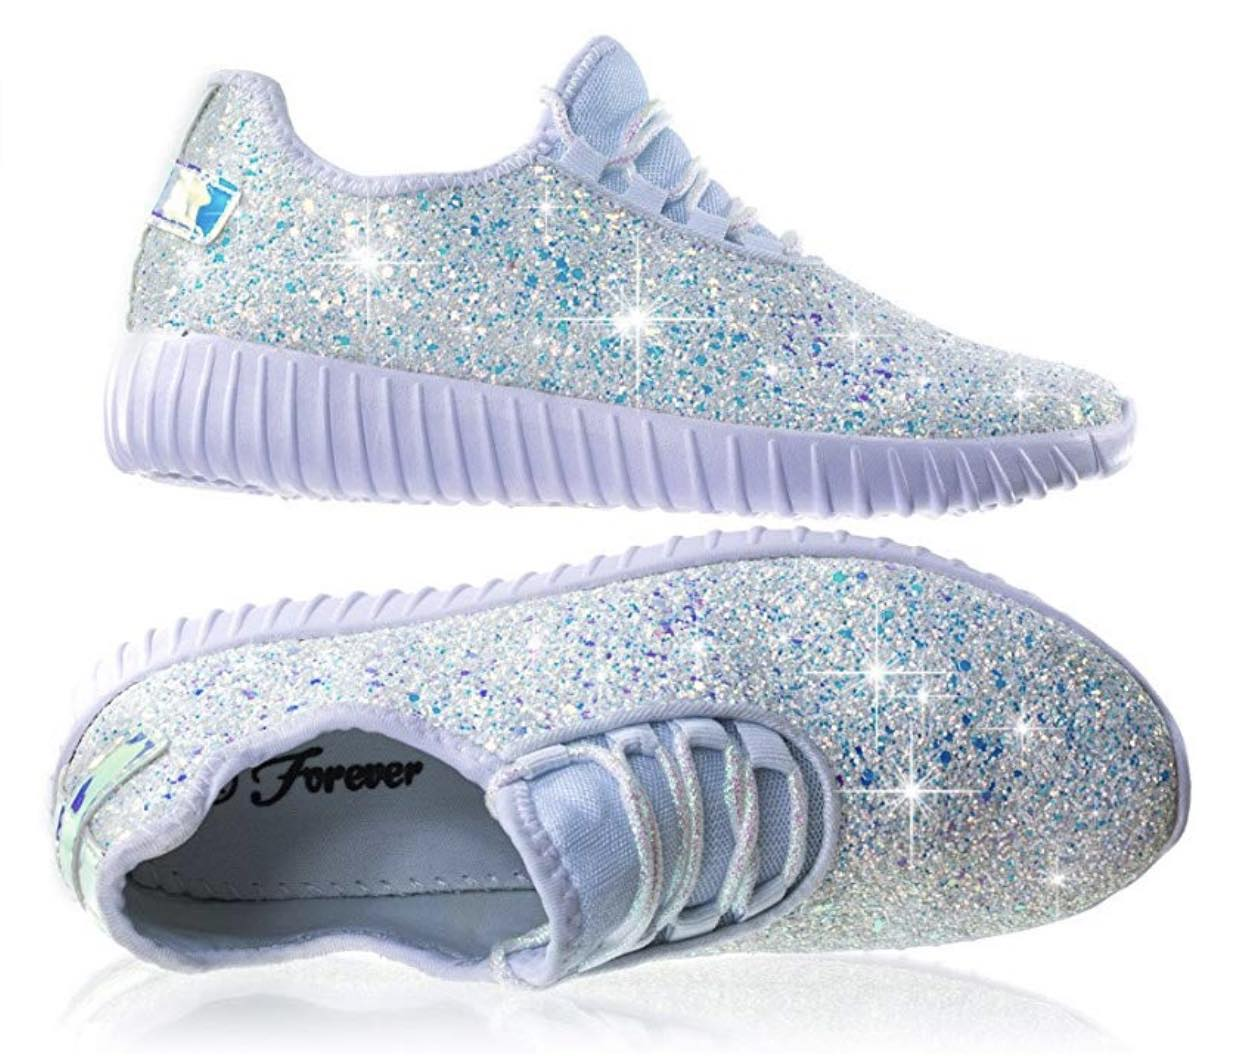 Glitter Shoes - Stylish Festival shoes for girls